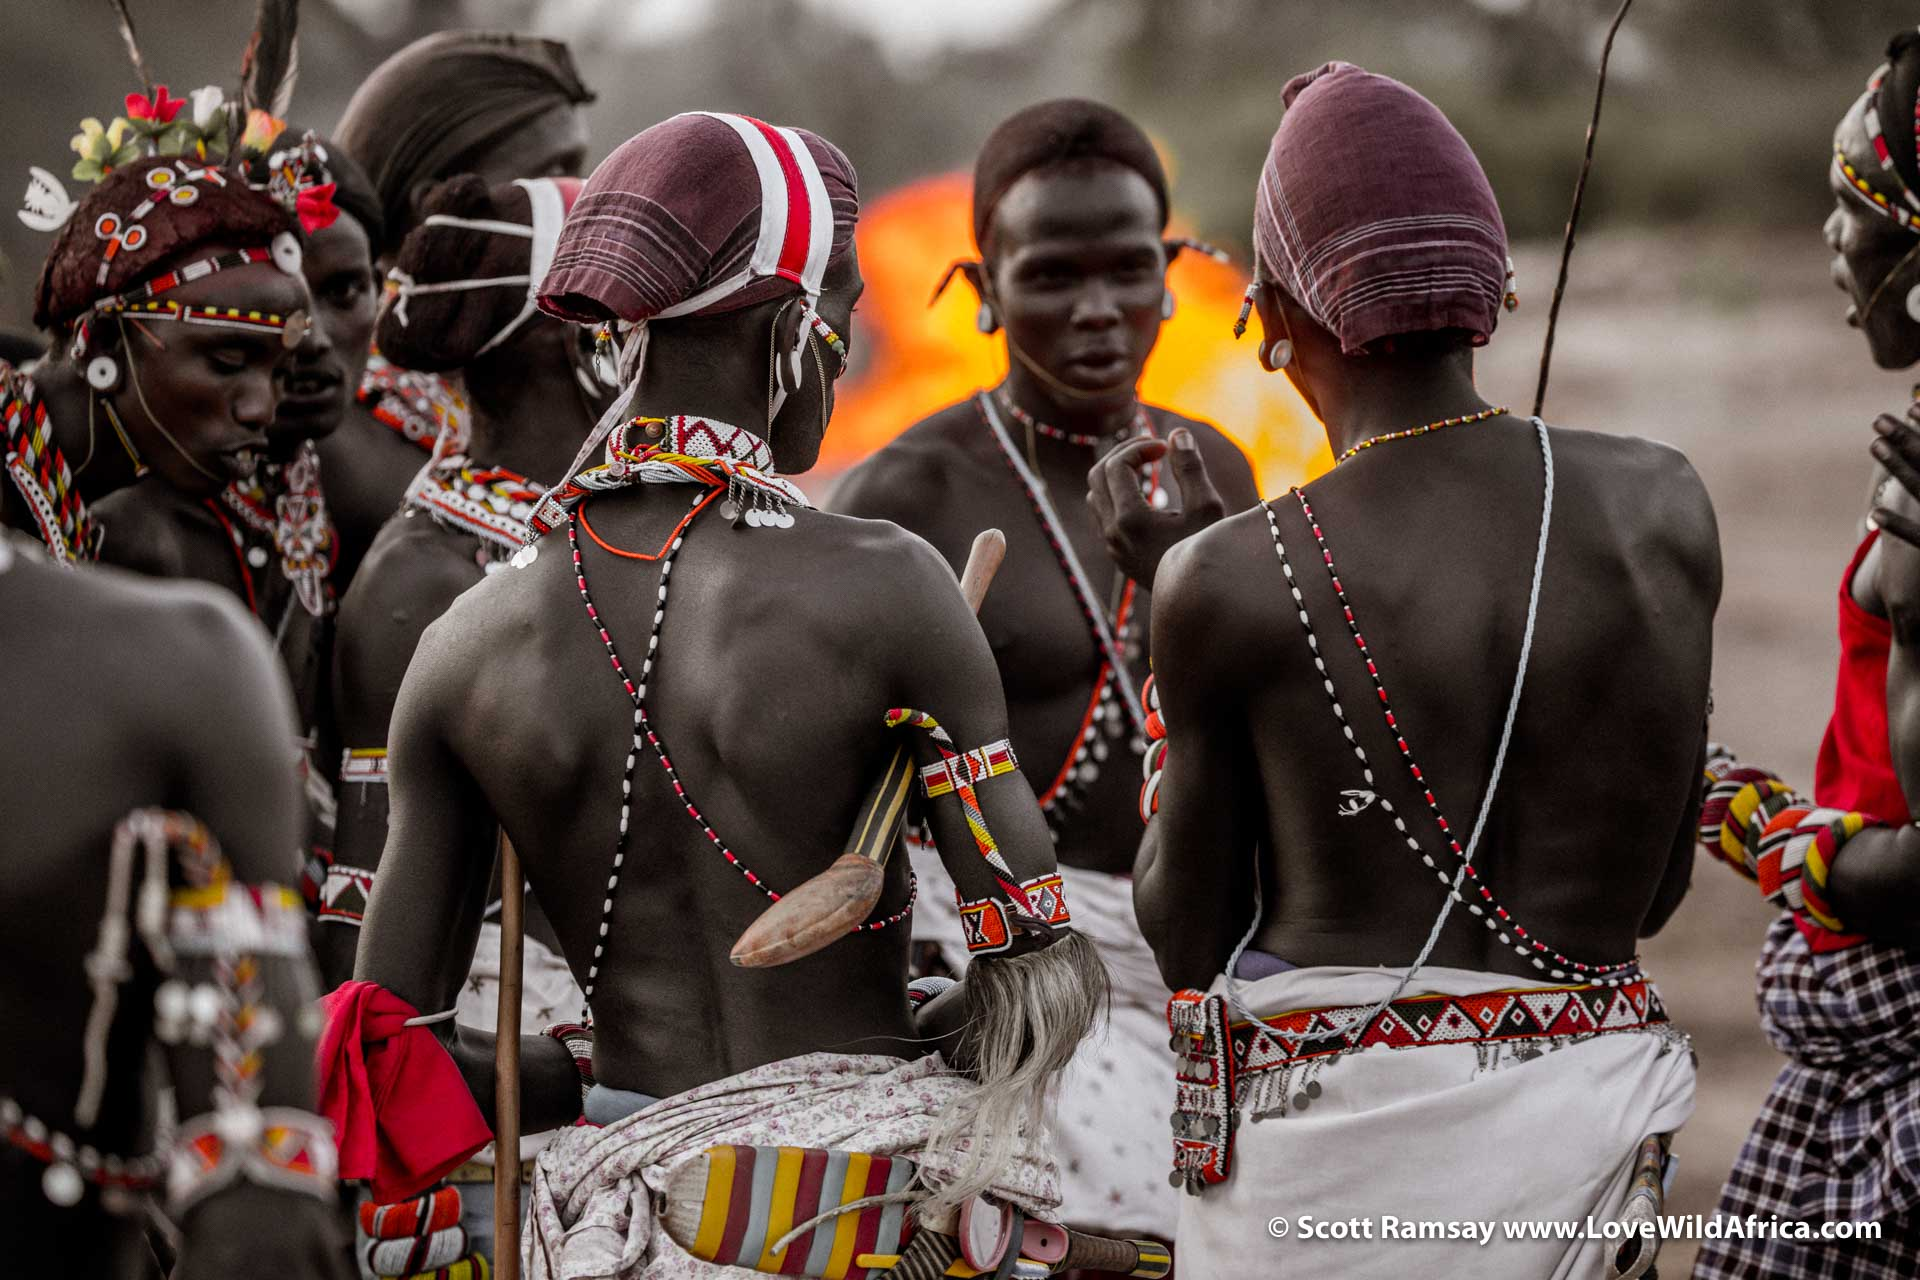 The Samburu are a documentary photographer's dream...the bright colours of their jewelry and cloths, contrasted with their smooth, coffee-coloured skin are endlessly photogenic.